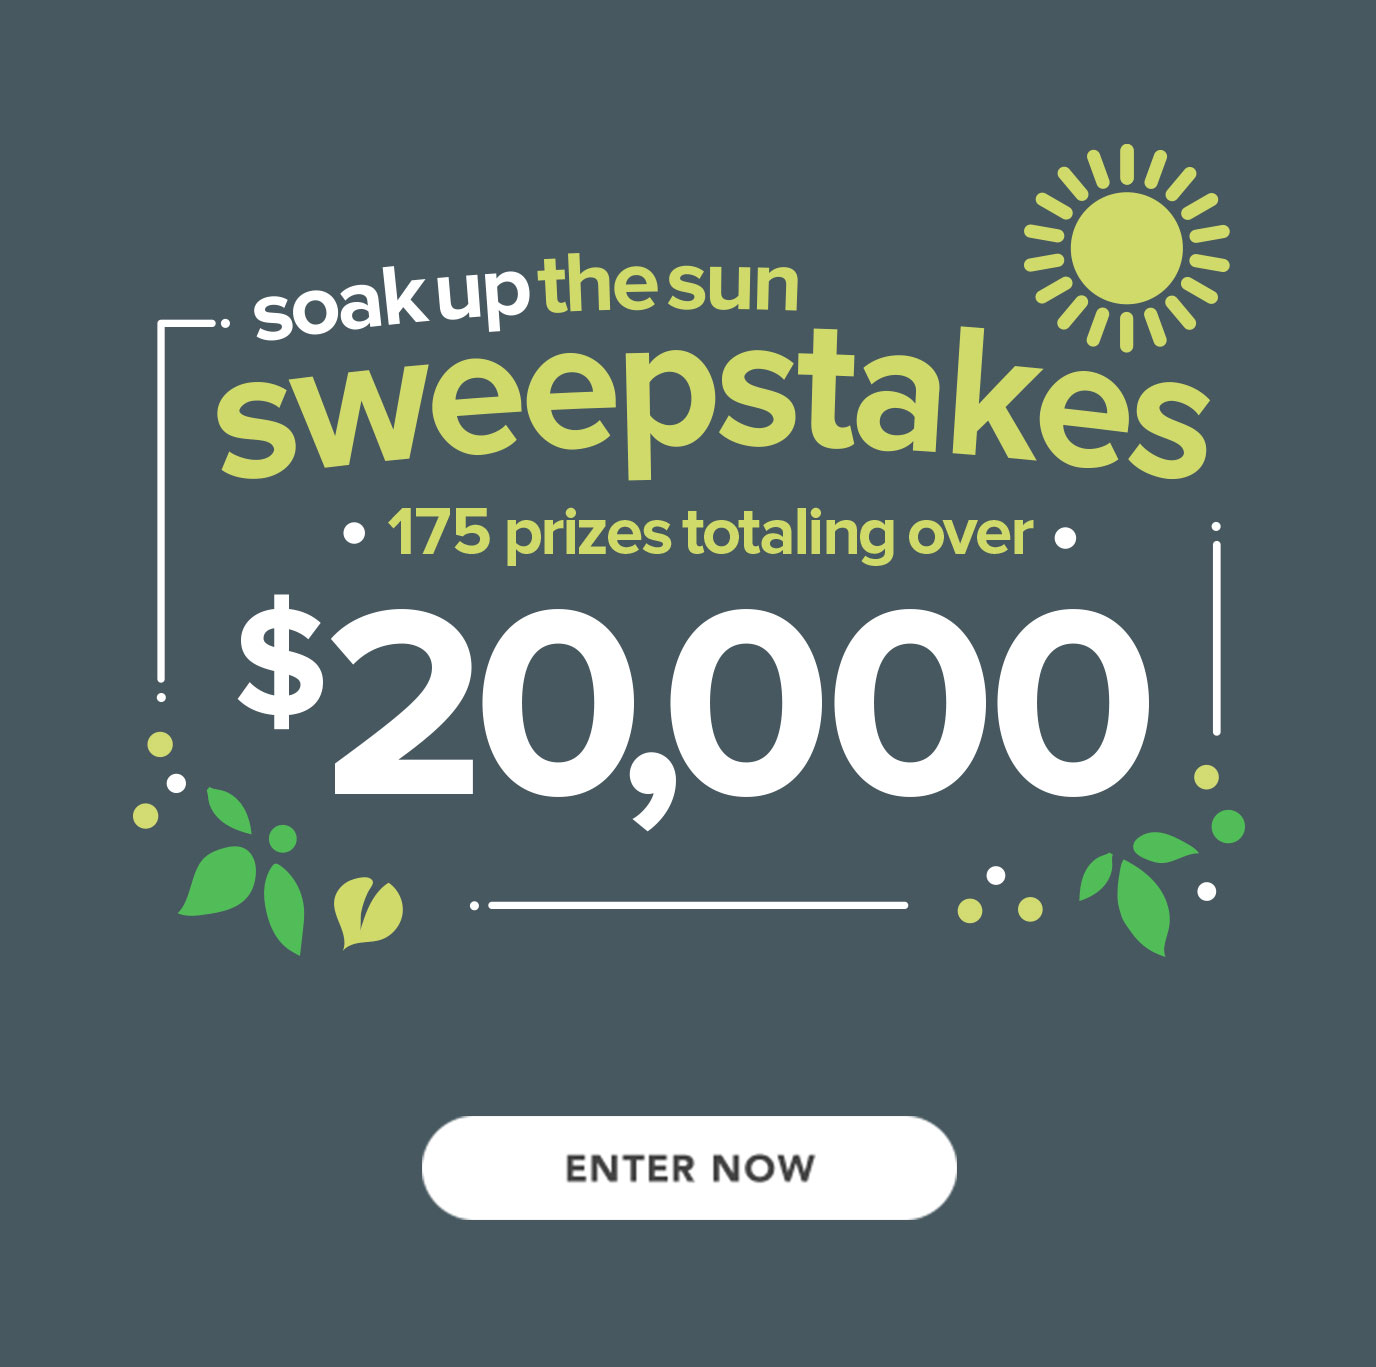 soak up the sun sweepstakes enter now